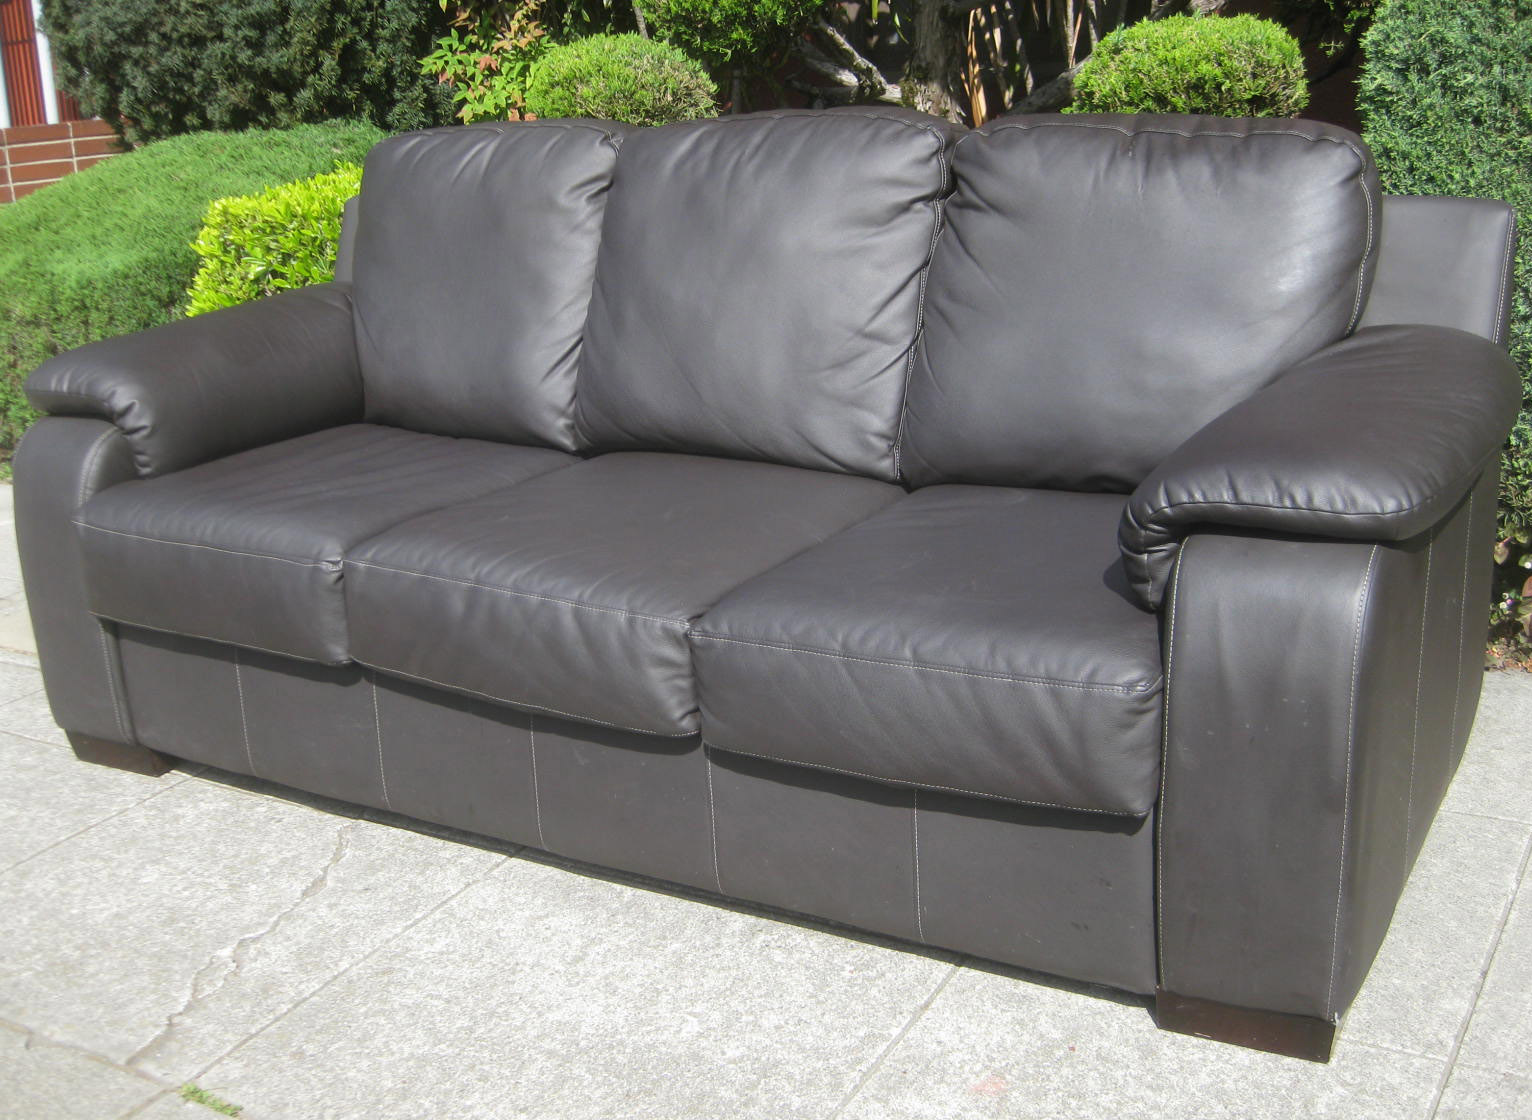 benson pleather op sofa wid stationary hei sharpen furniture lane couch